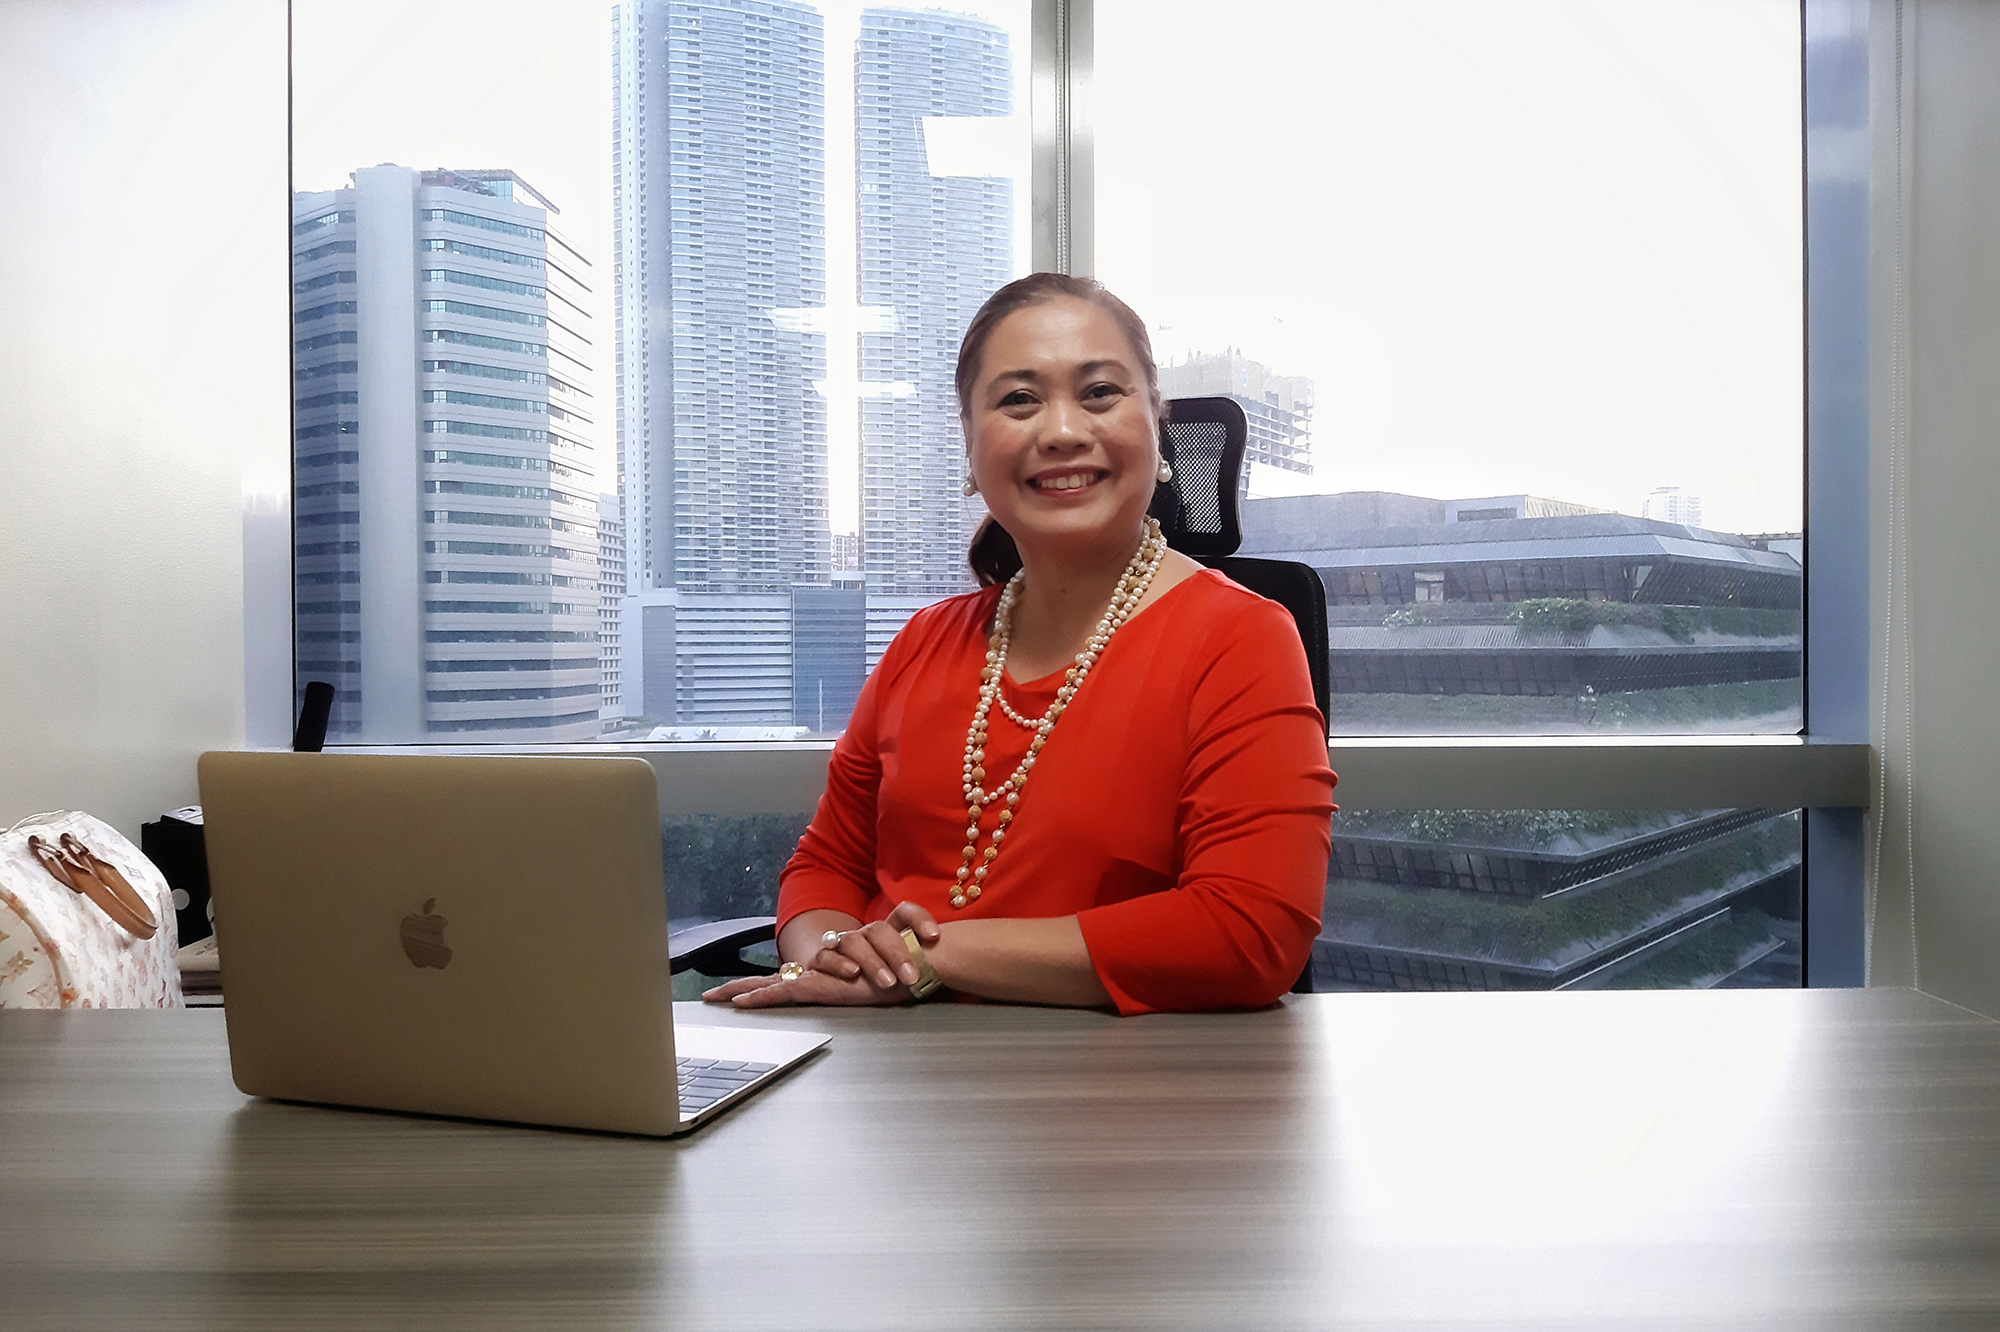 Ma. Victoria Lualhati Nabs Most Influential Filipina Woman in the World Award